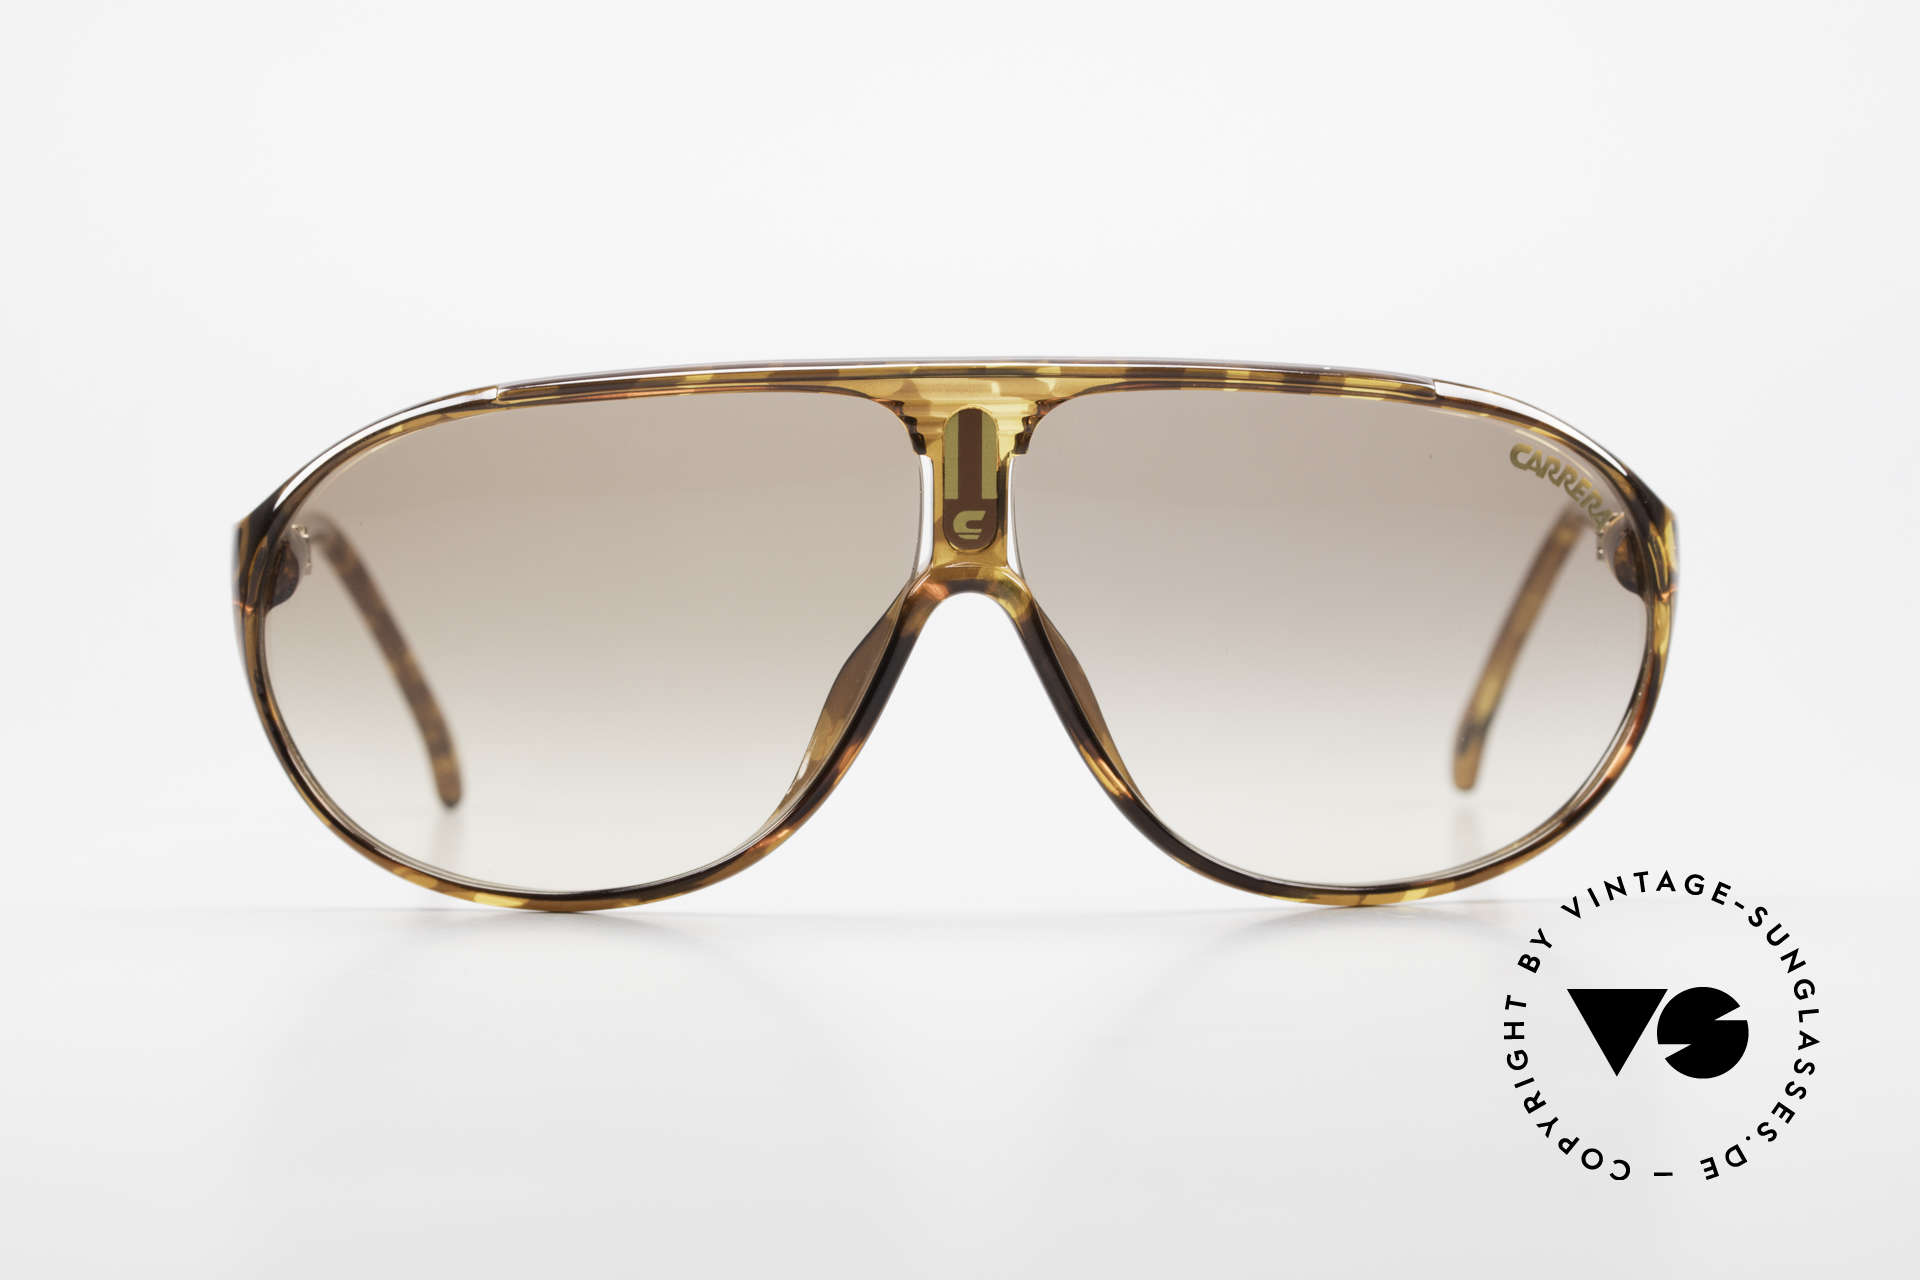 Carrera 5412 Optyl Sunglasses 80's Sport, frame made of durable and long-living OPTYL material, Made for Men and Women